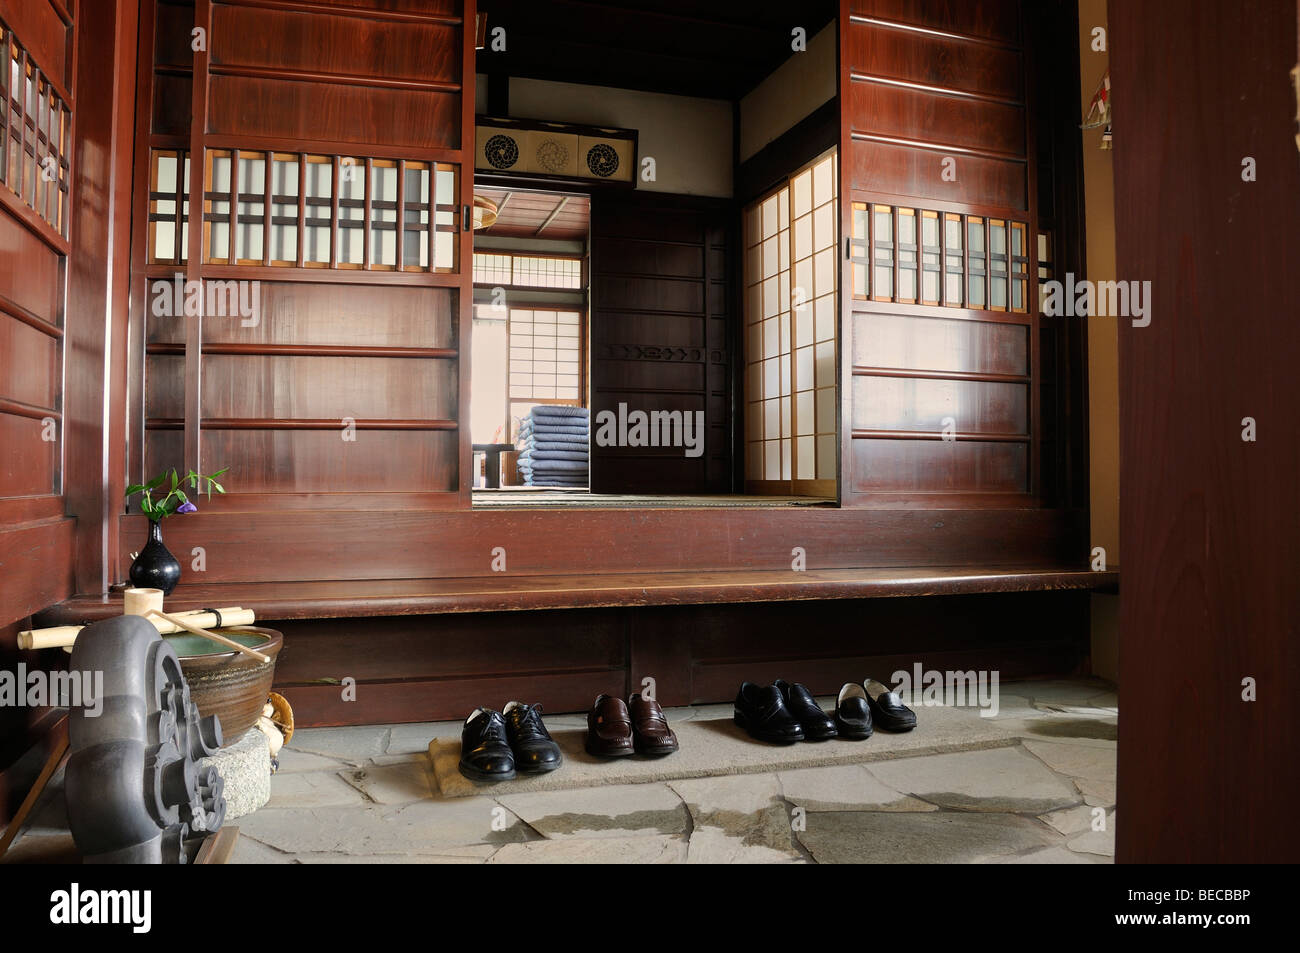 Traditionelles Haus In Japan Kaufen Traditionelles Haus Schuhe In Der Eingang Halle Kyoto Japan